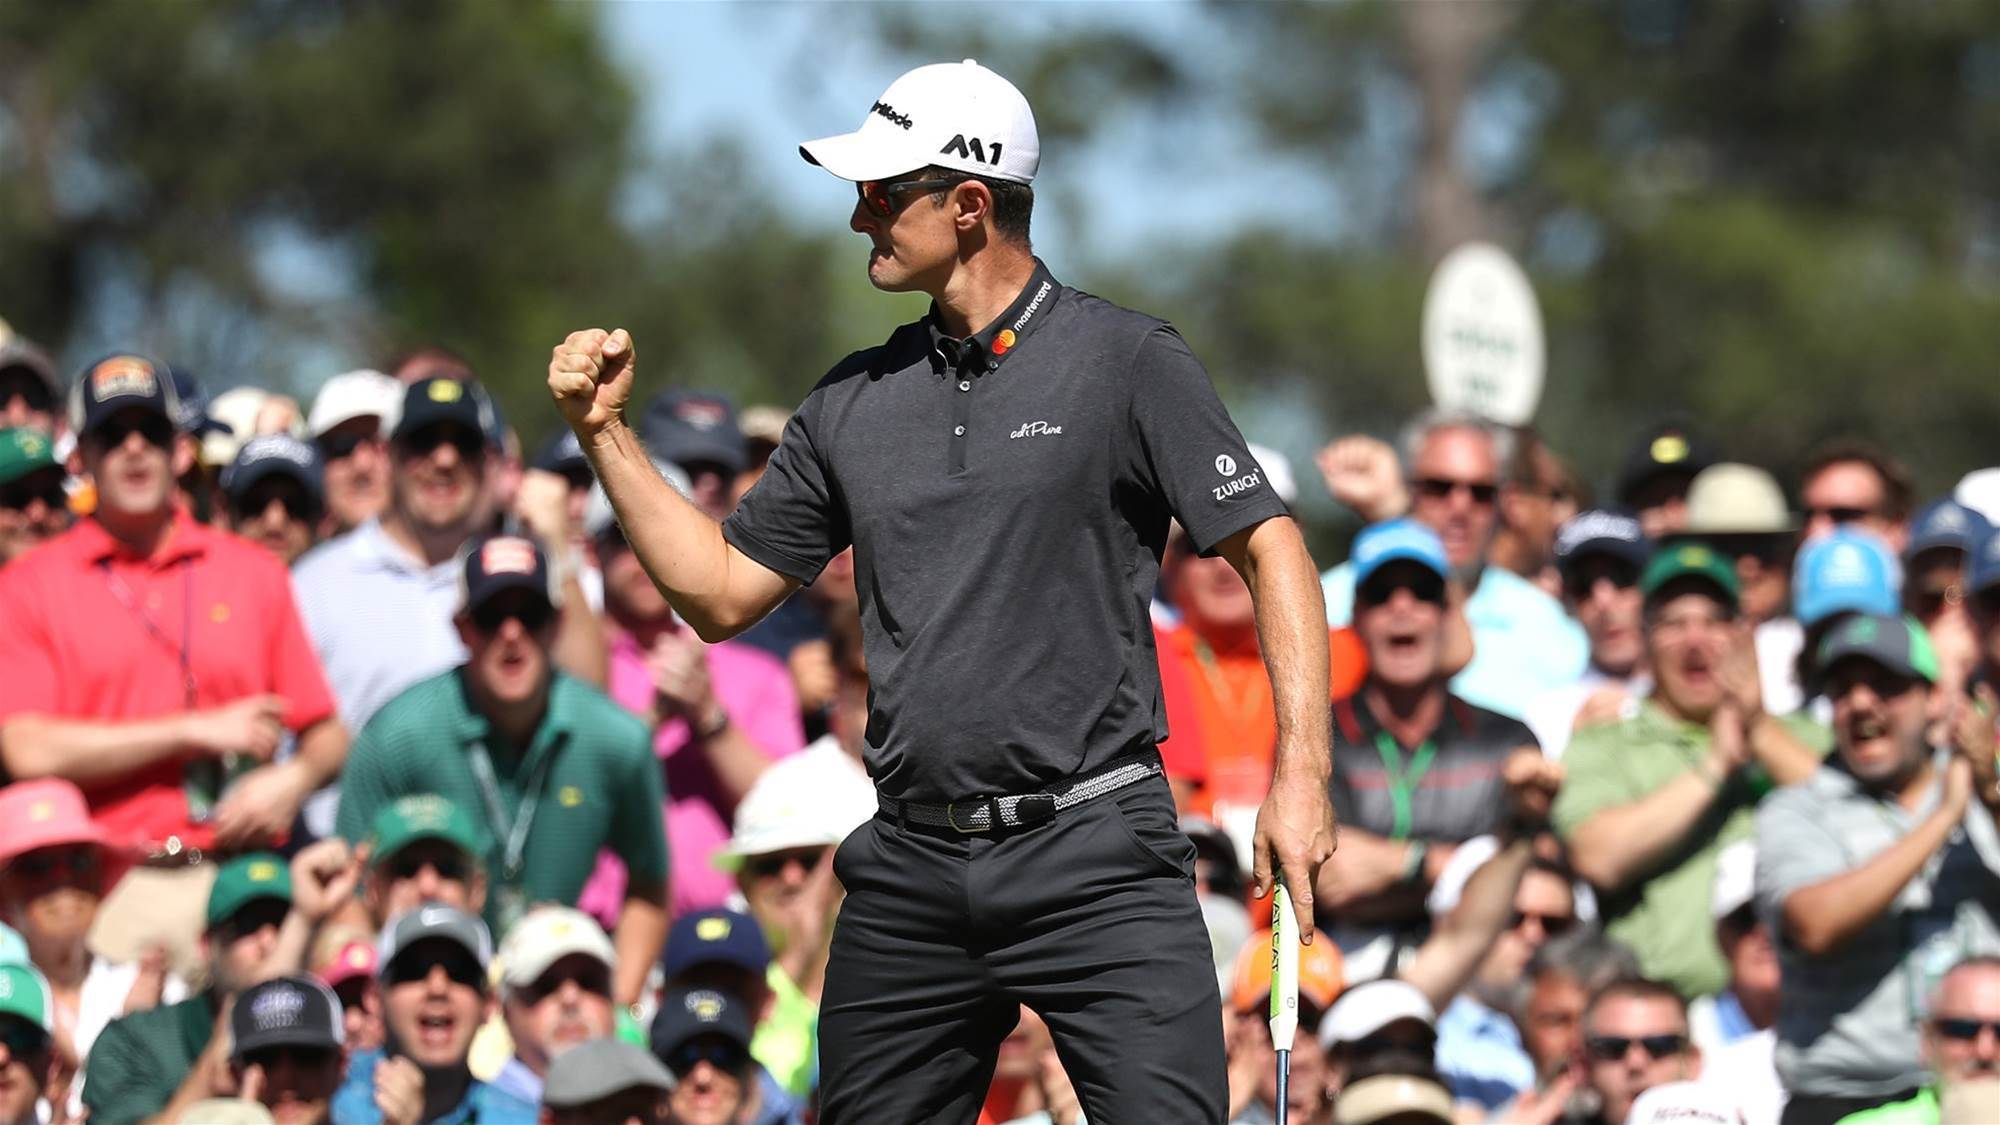 Justin Rose: 'My time' to win Masters